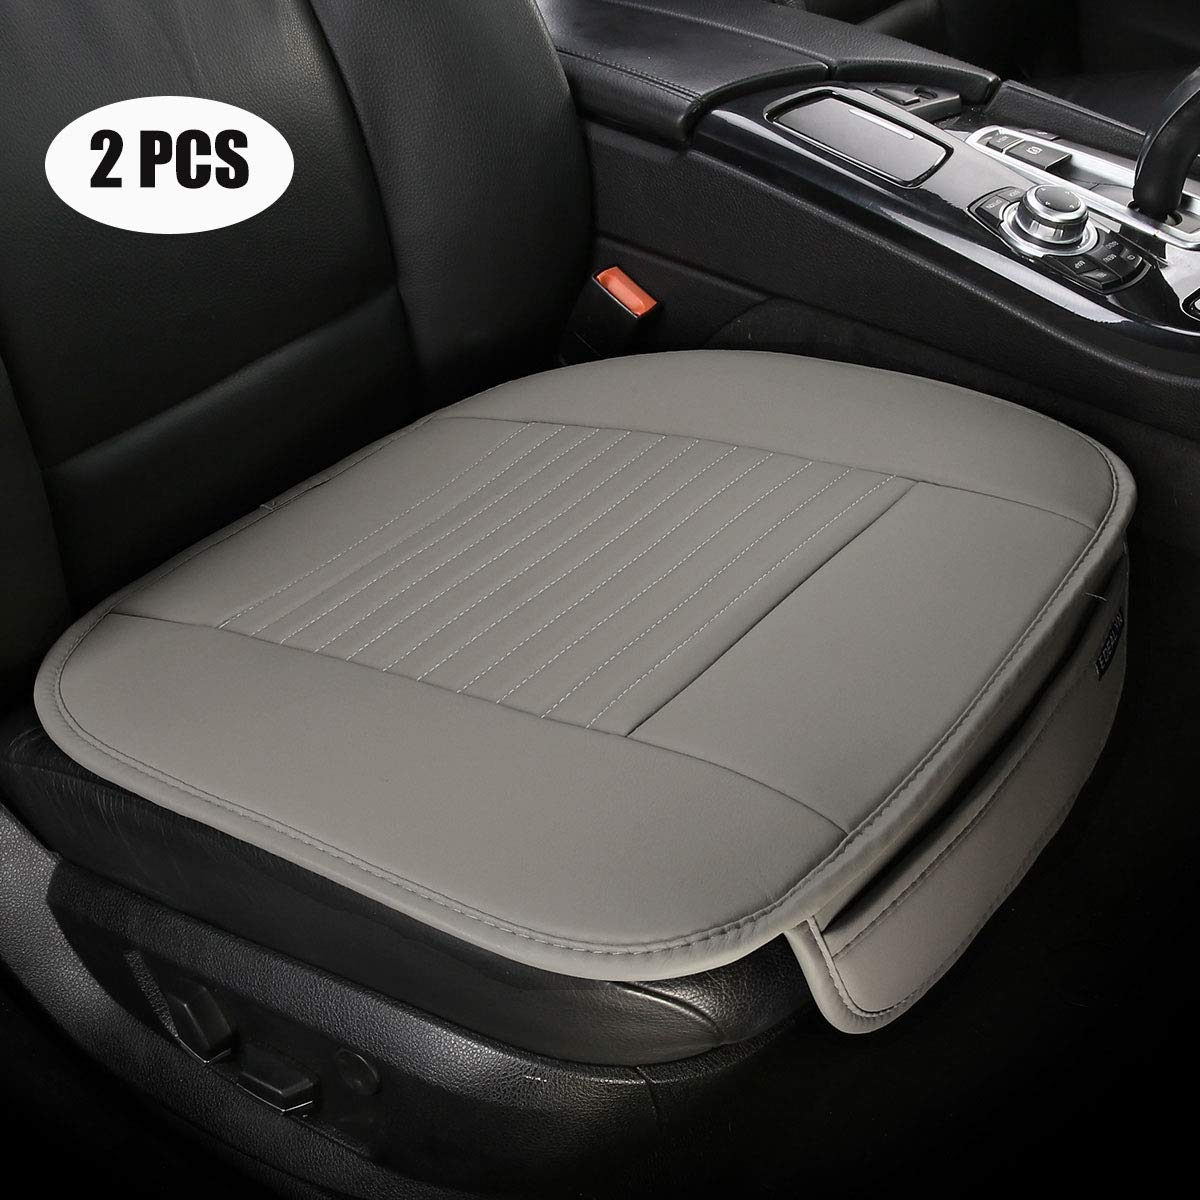 PU leather Car seat cover Car Accessories Car Seat Protector Seat Covers Universal Car, 2PCS Gray-N EDEALYN 19.7 inches deep /× 20.87 wide